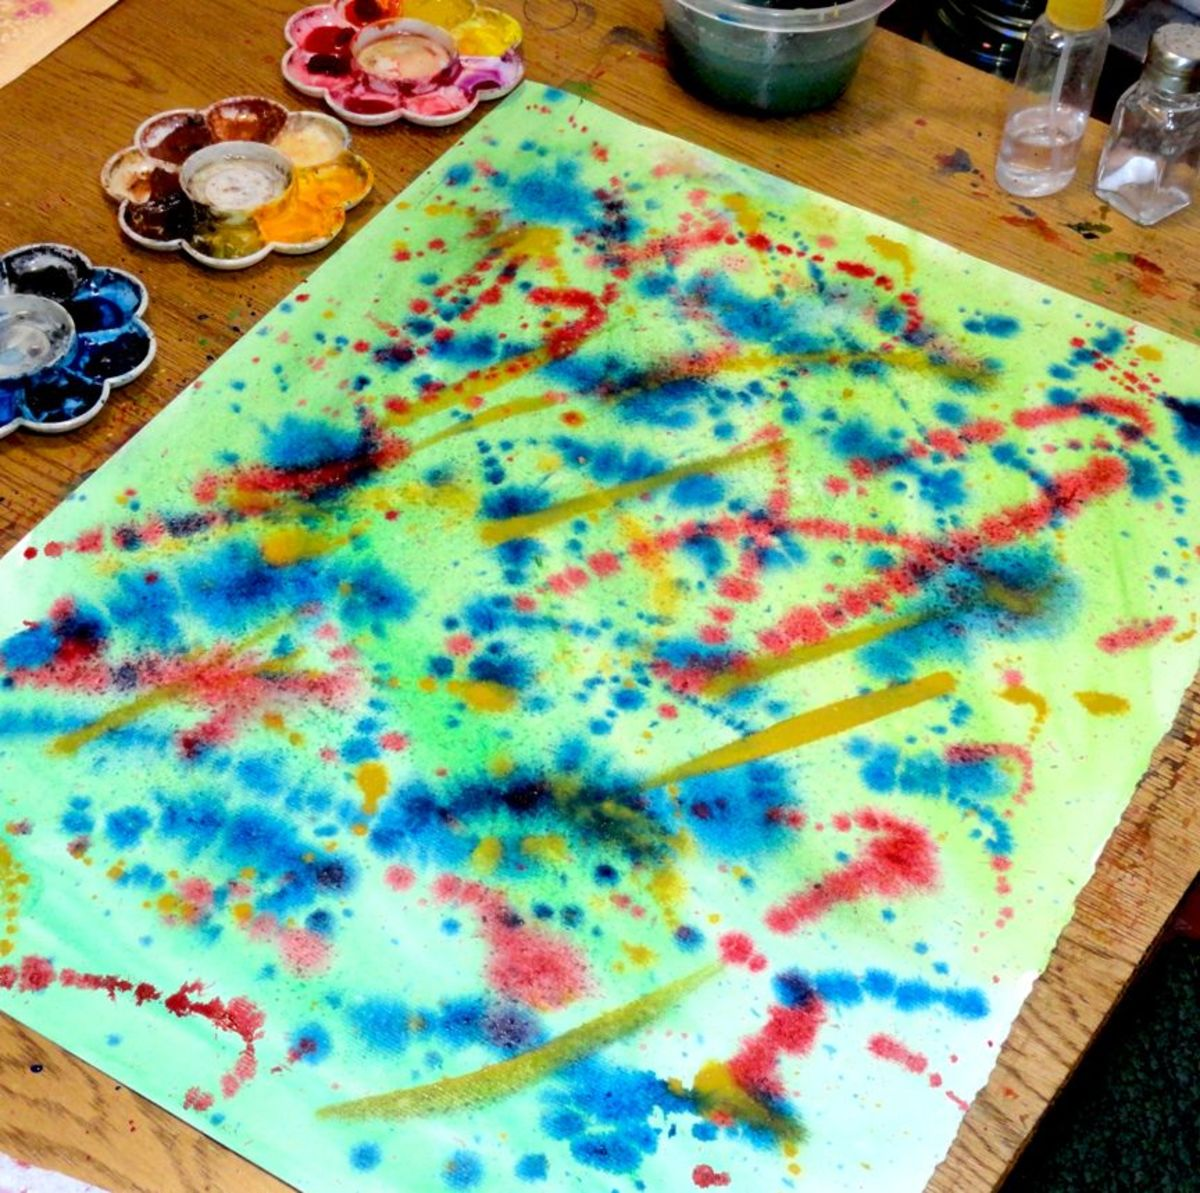 Wet on Wet splatters.